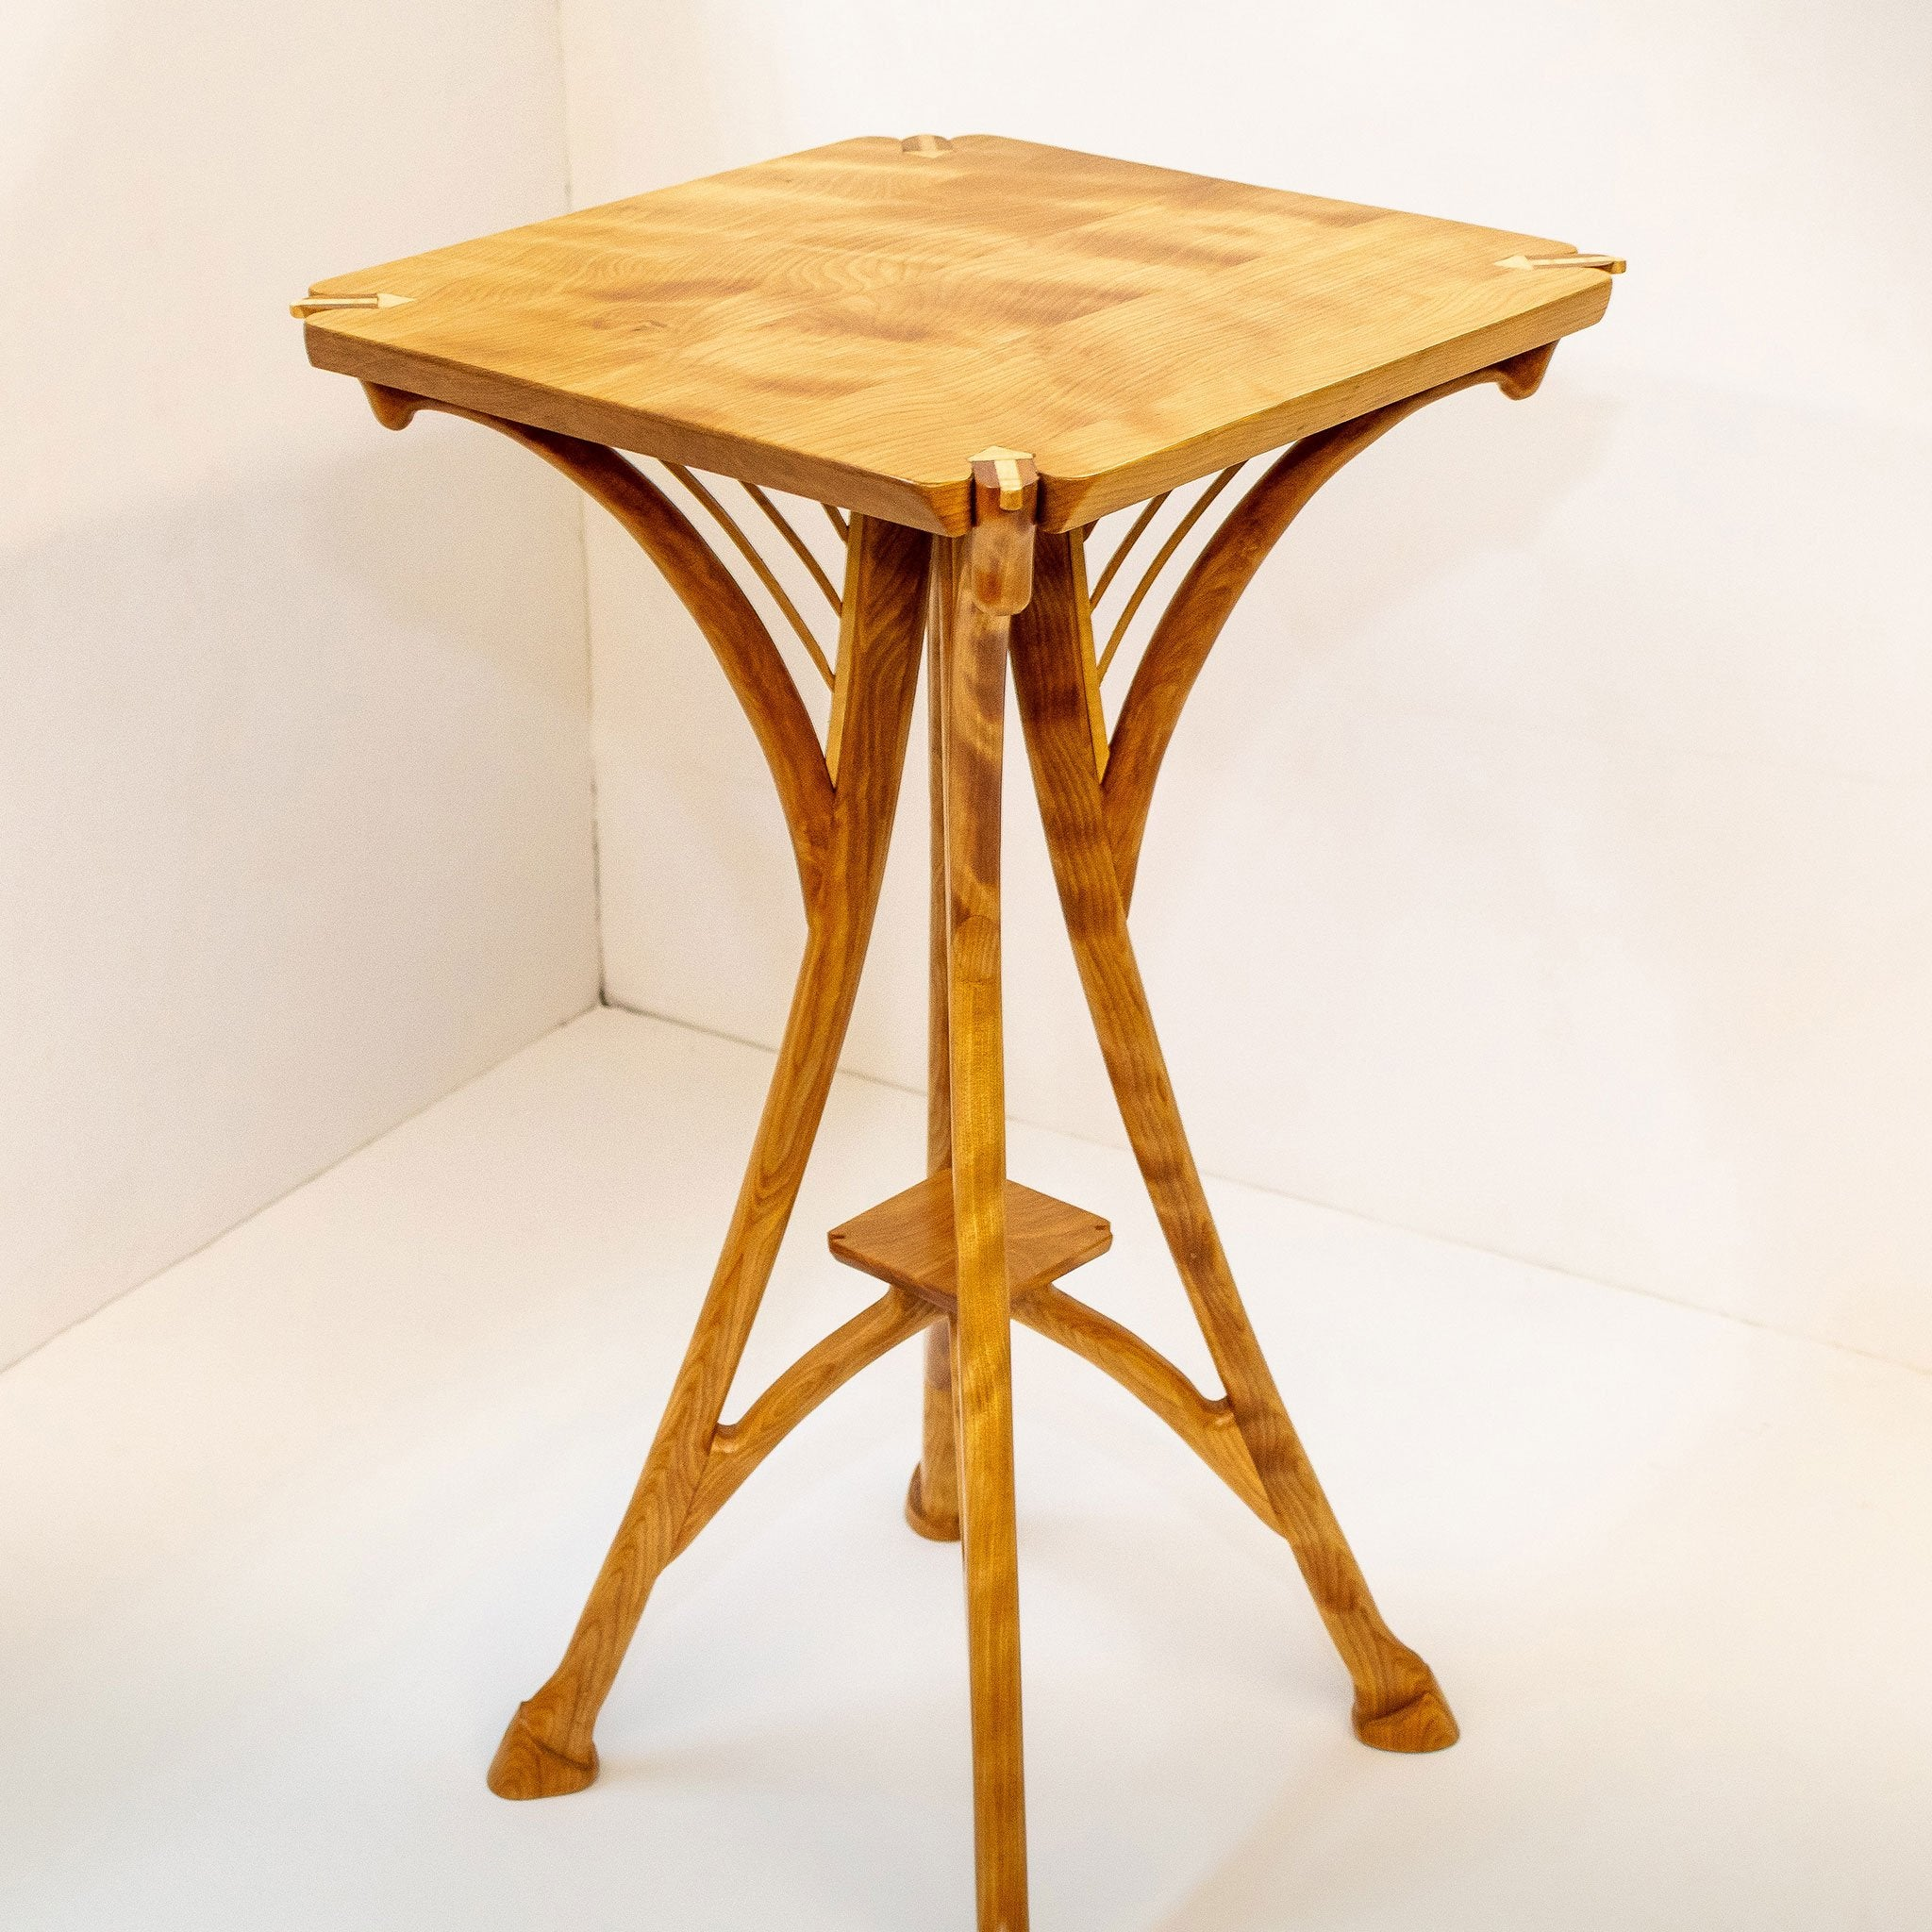 Joseph muehl flame birch end table artistic artisan handcrafted furniture